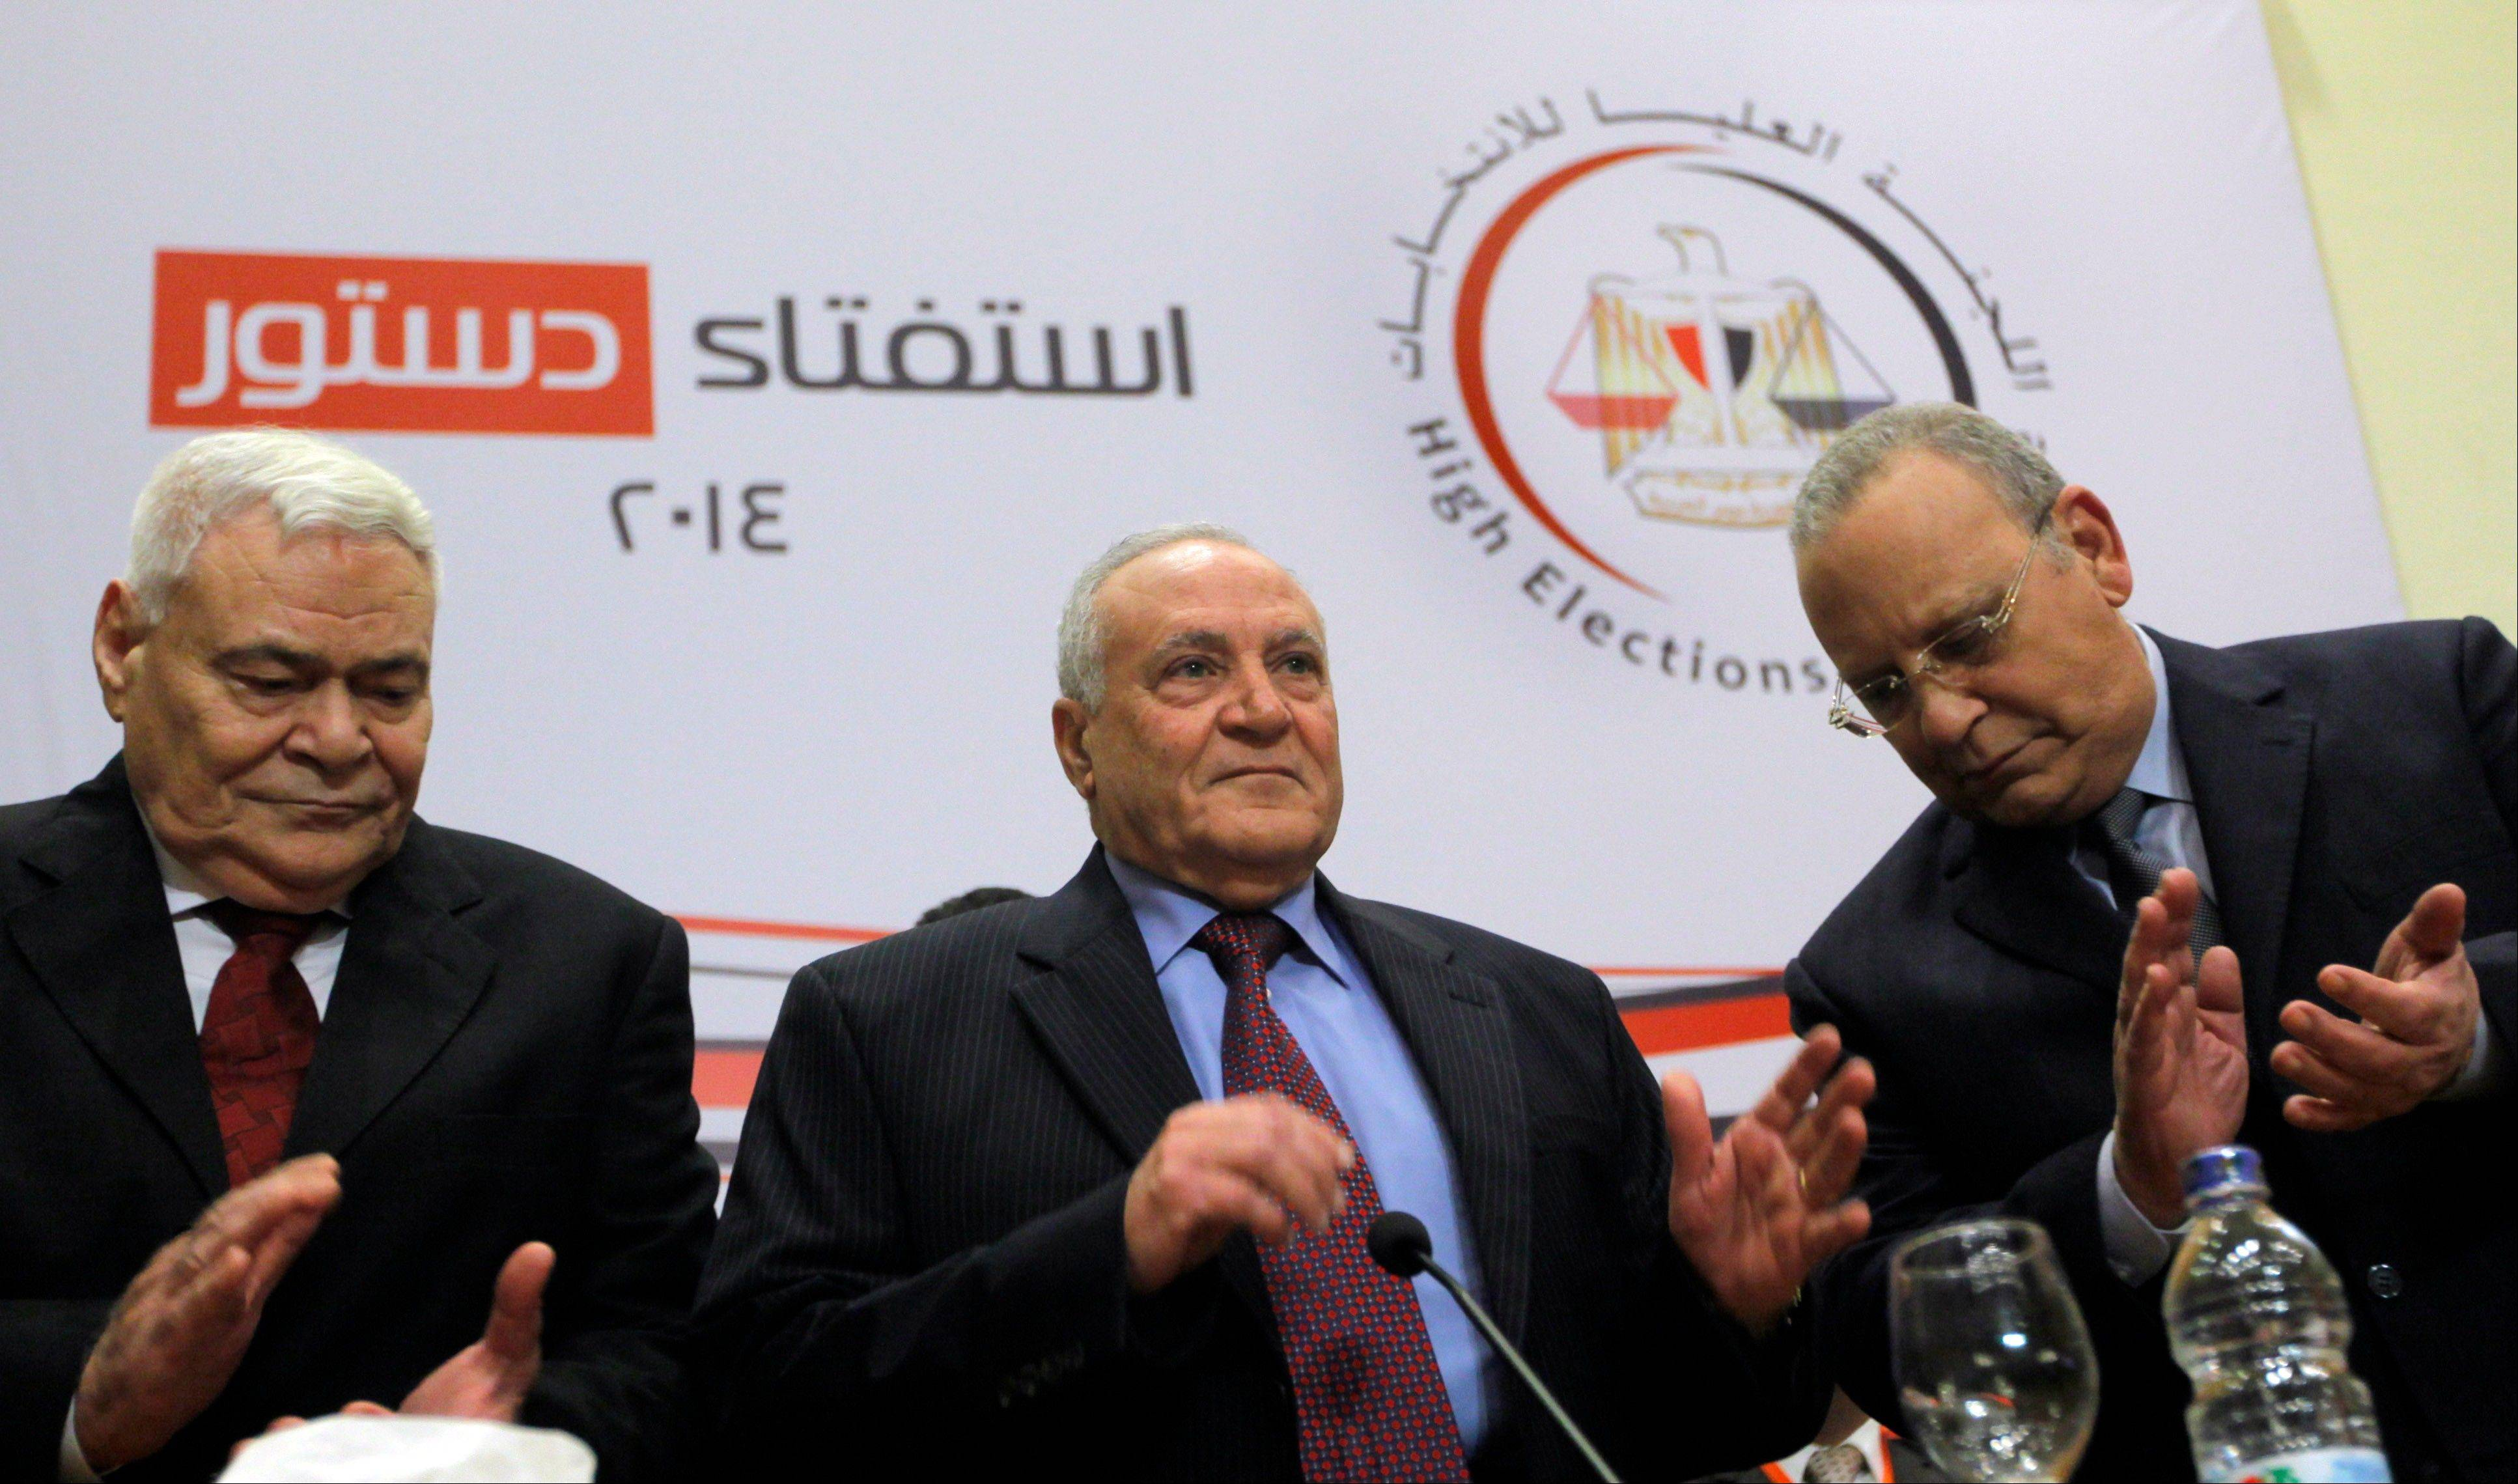 Judge Nabil Salib, head of Egypt�s High Election Commission, center, is greeted by other members as he prepares to announce the voting results Saturday of a referendum on Egypt�s military-backed constitution, in Cairo, Egypt.